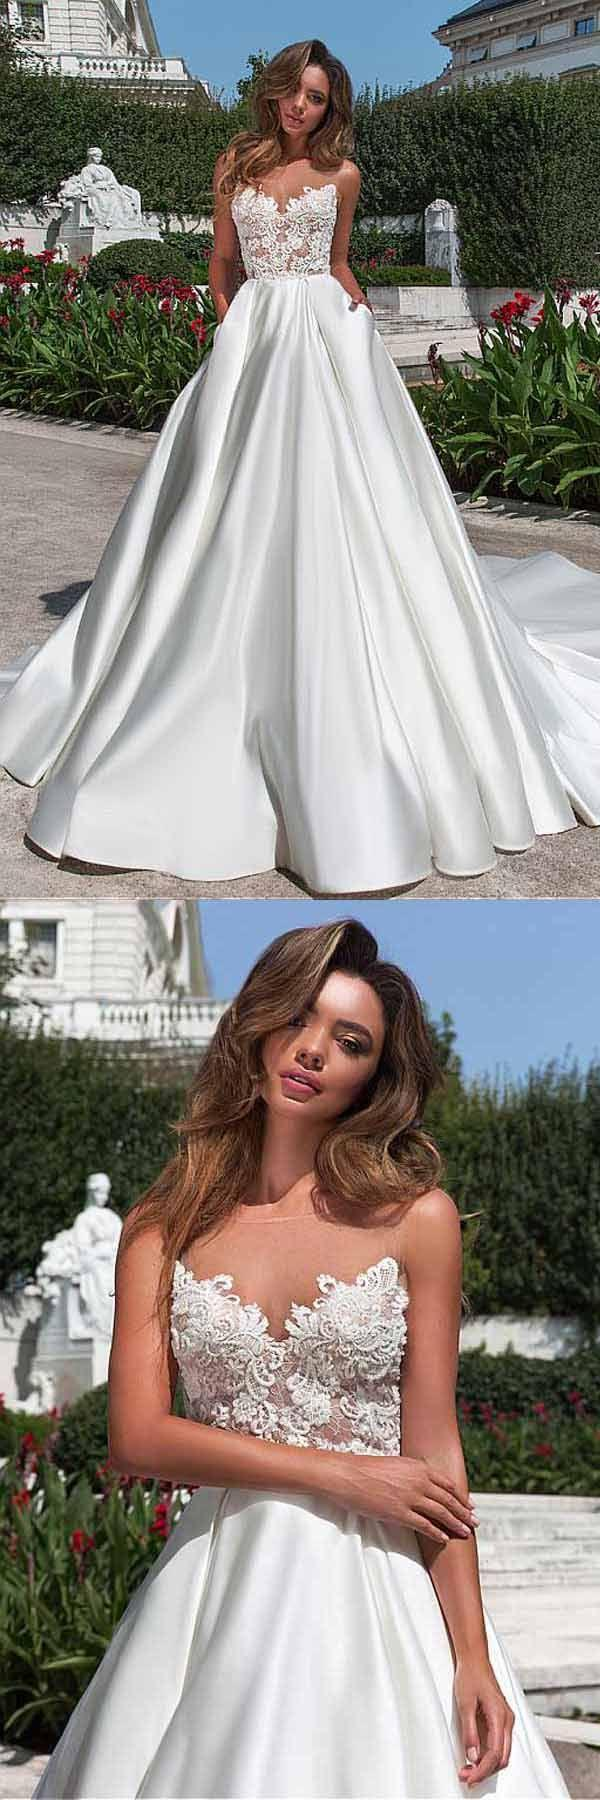 Mariage - Satin Neckline A-line Wedding Dress With Pockets Lace Appliques WD213